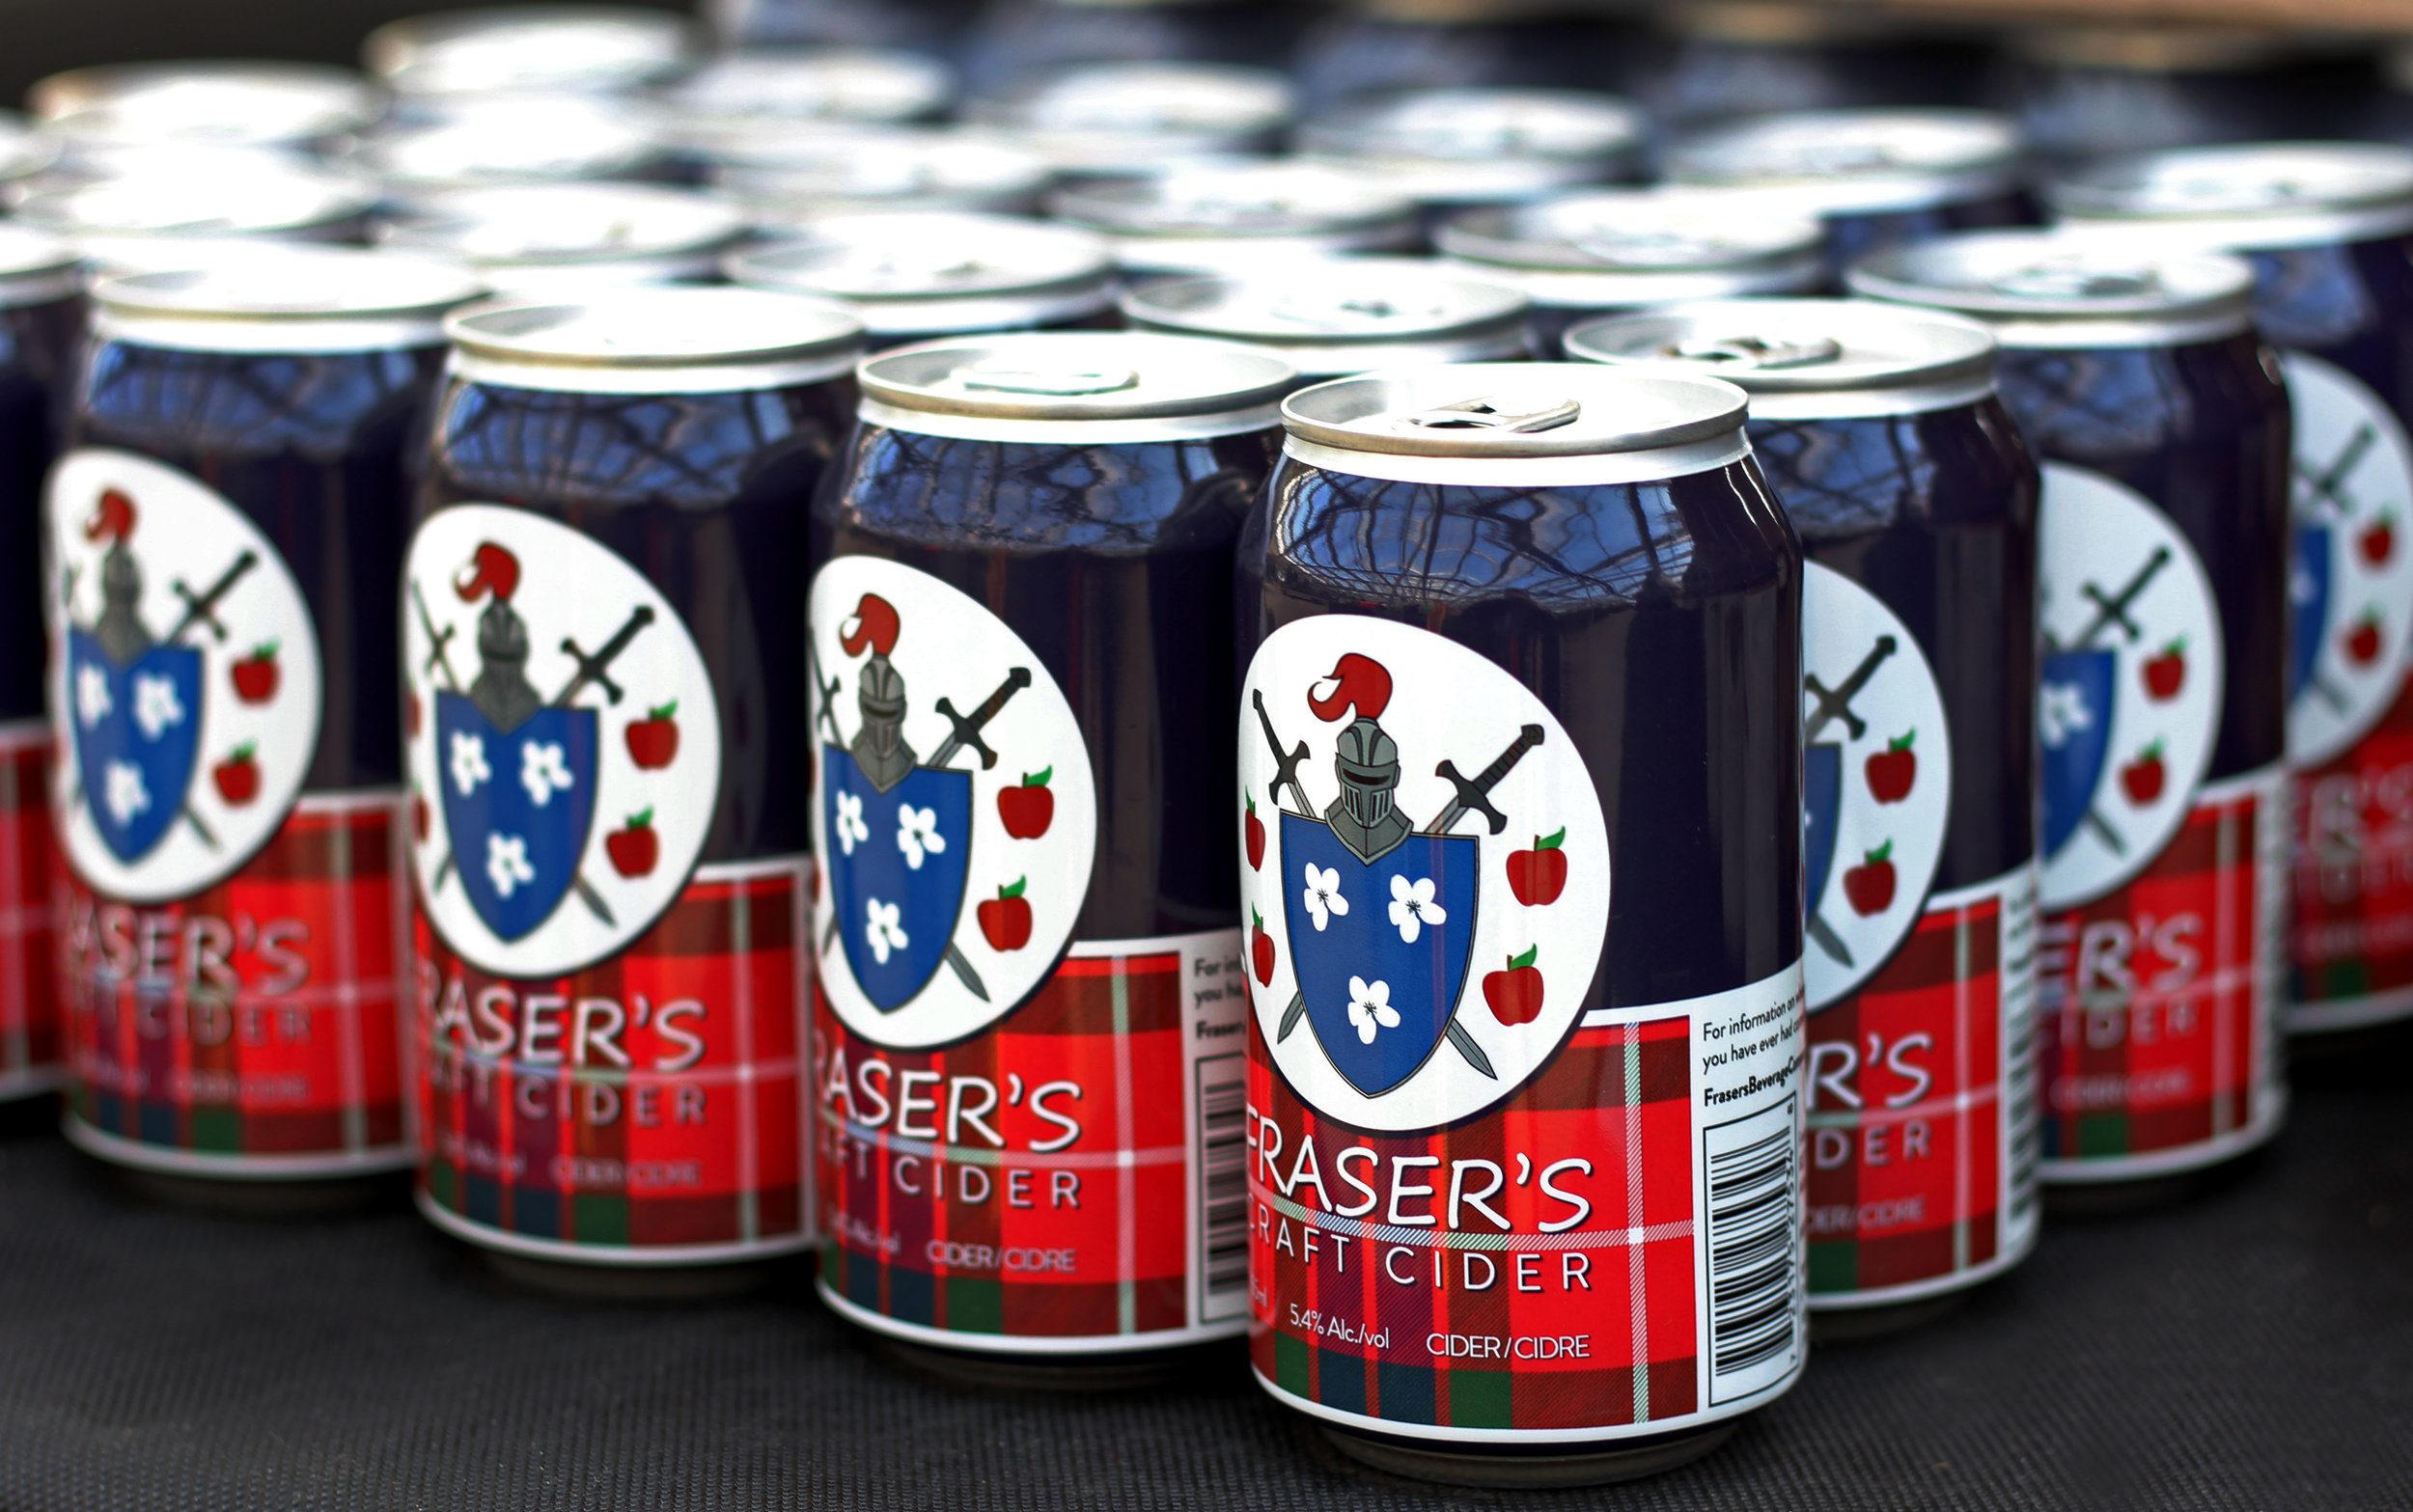 Fraser's Craft Cider - Made with 100% Ontario apples, Fraser's Craft Cider is a dry cider with less than 1g of sugar in each can, making it the perfect pair to any patio in Ontario regardless of the season